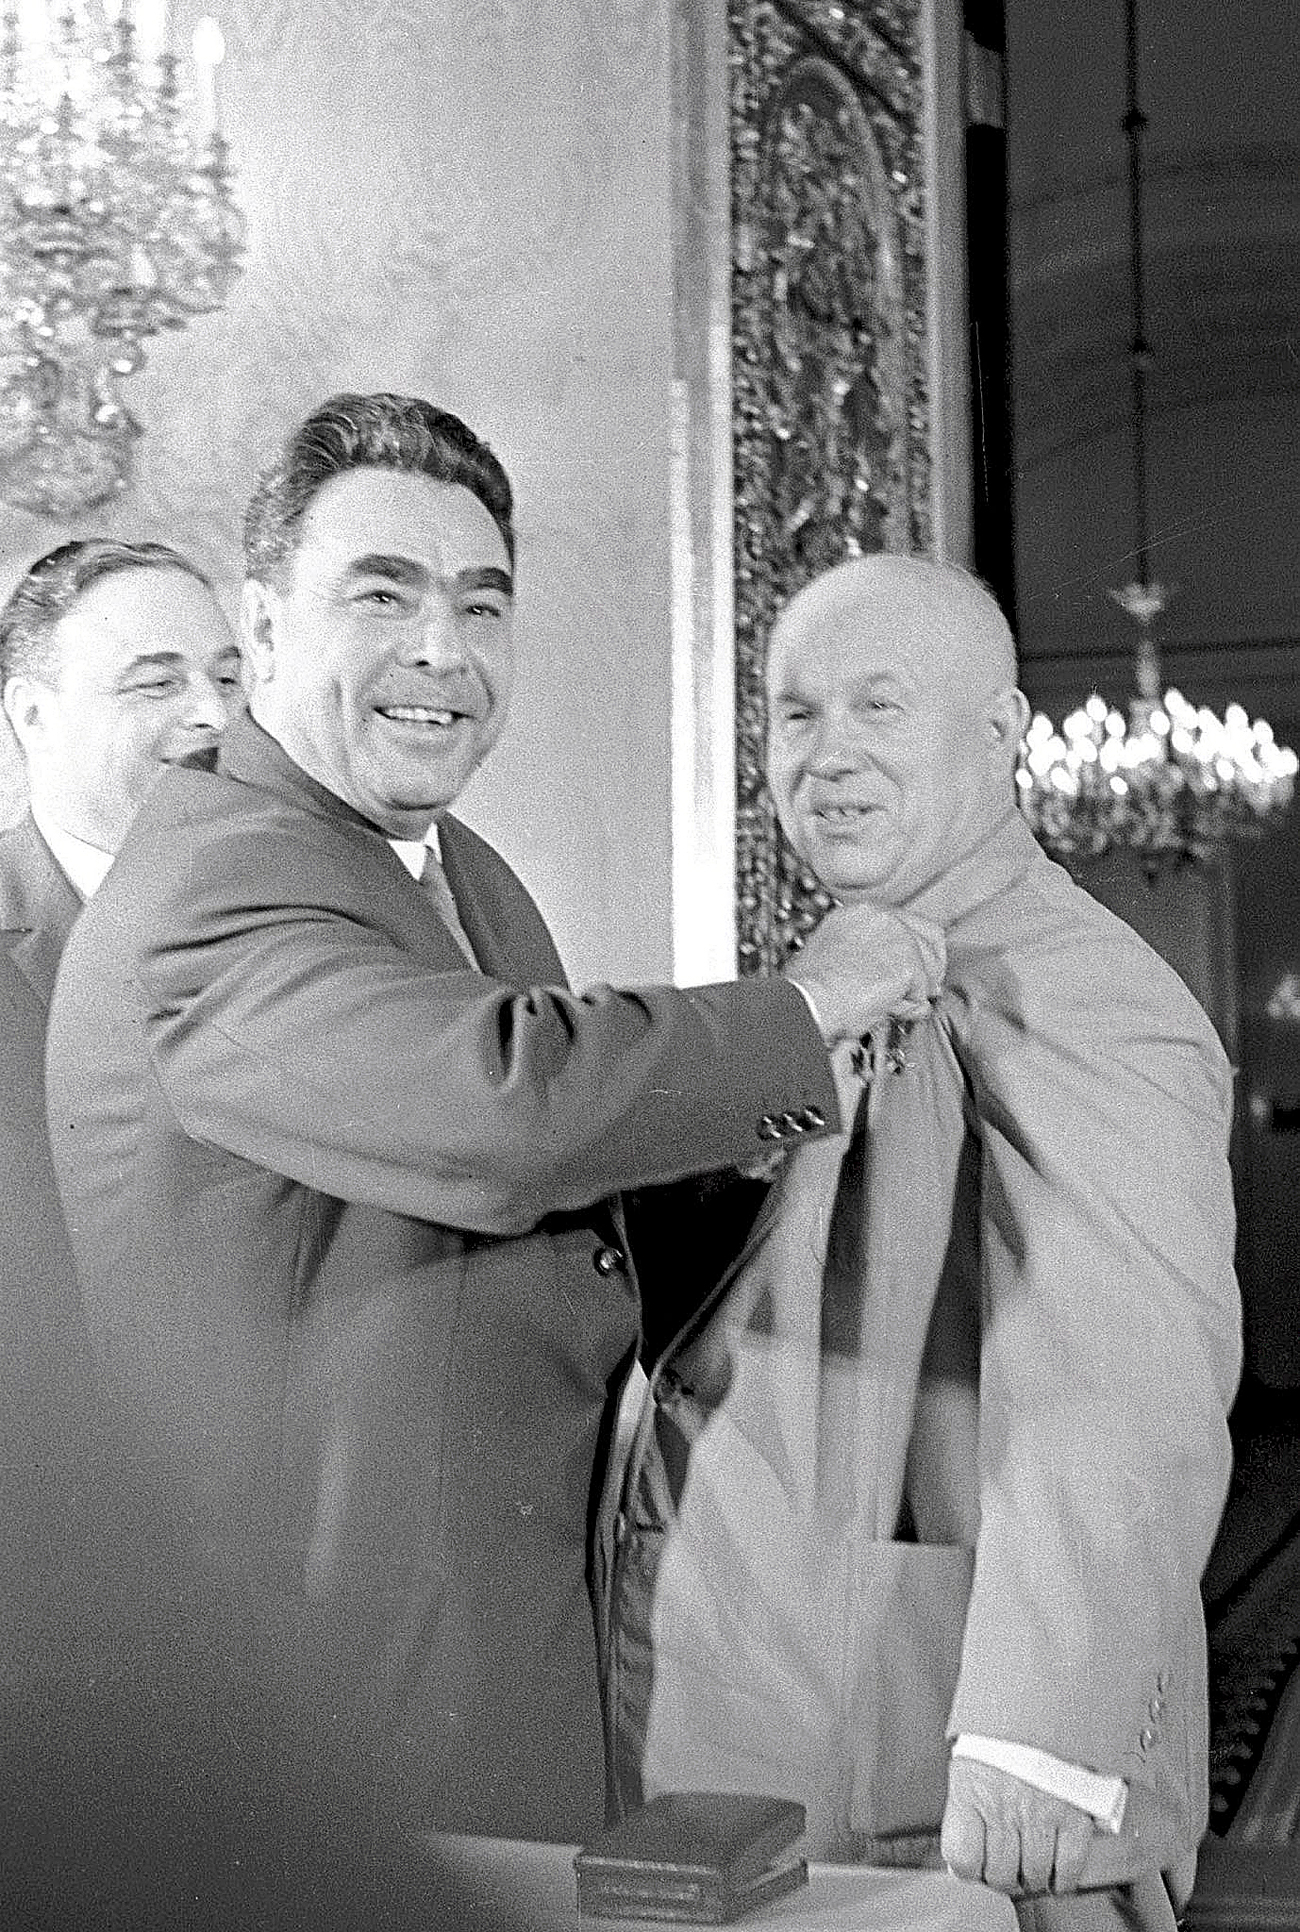 Awarding the First Secretary of the CPSU Central Committee Nikita Khrushchev with the Hero of the Soviet Union title on April 17, 1964. Source: TASS